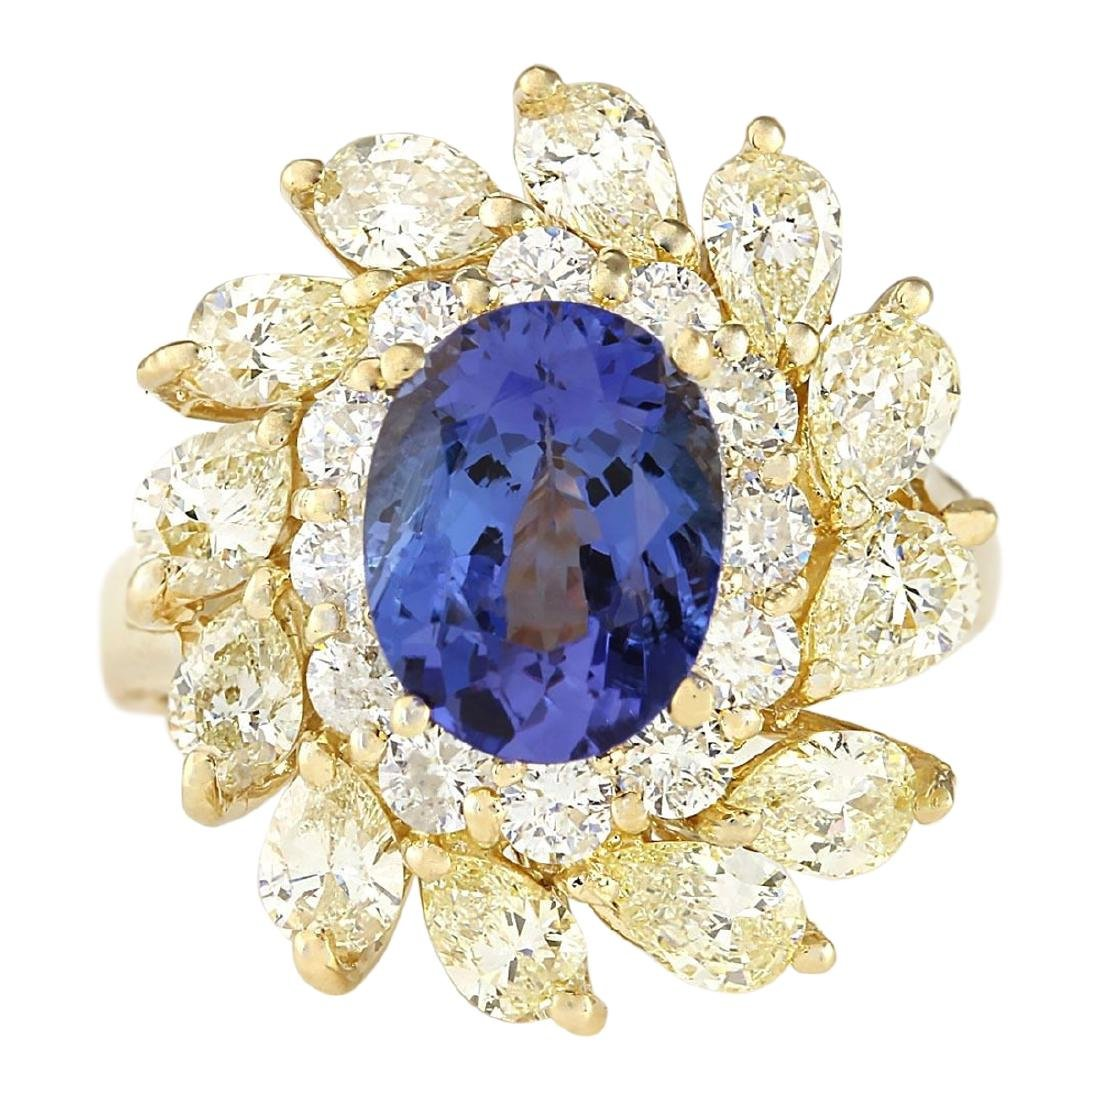 5.73 CTW Natural Tanzanite And Diamond Ring In 18K